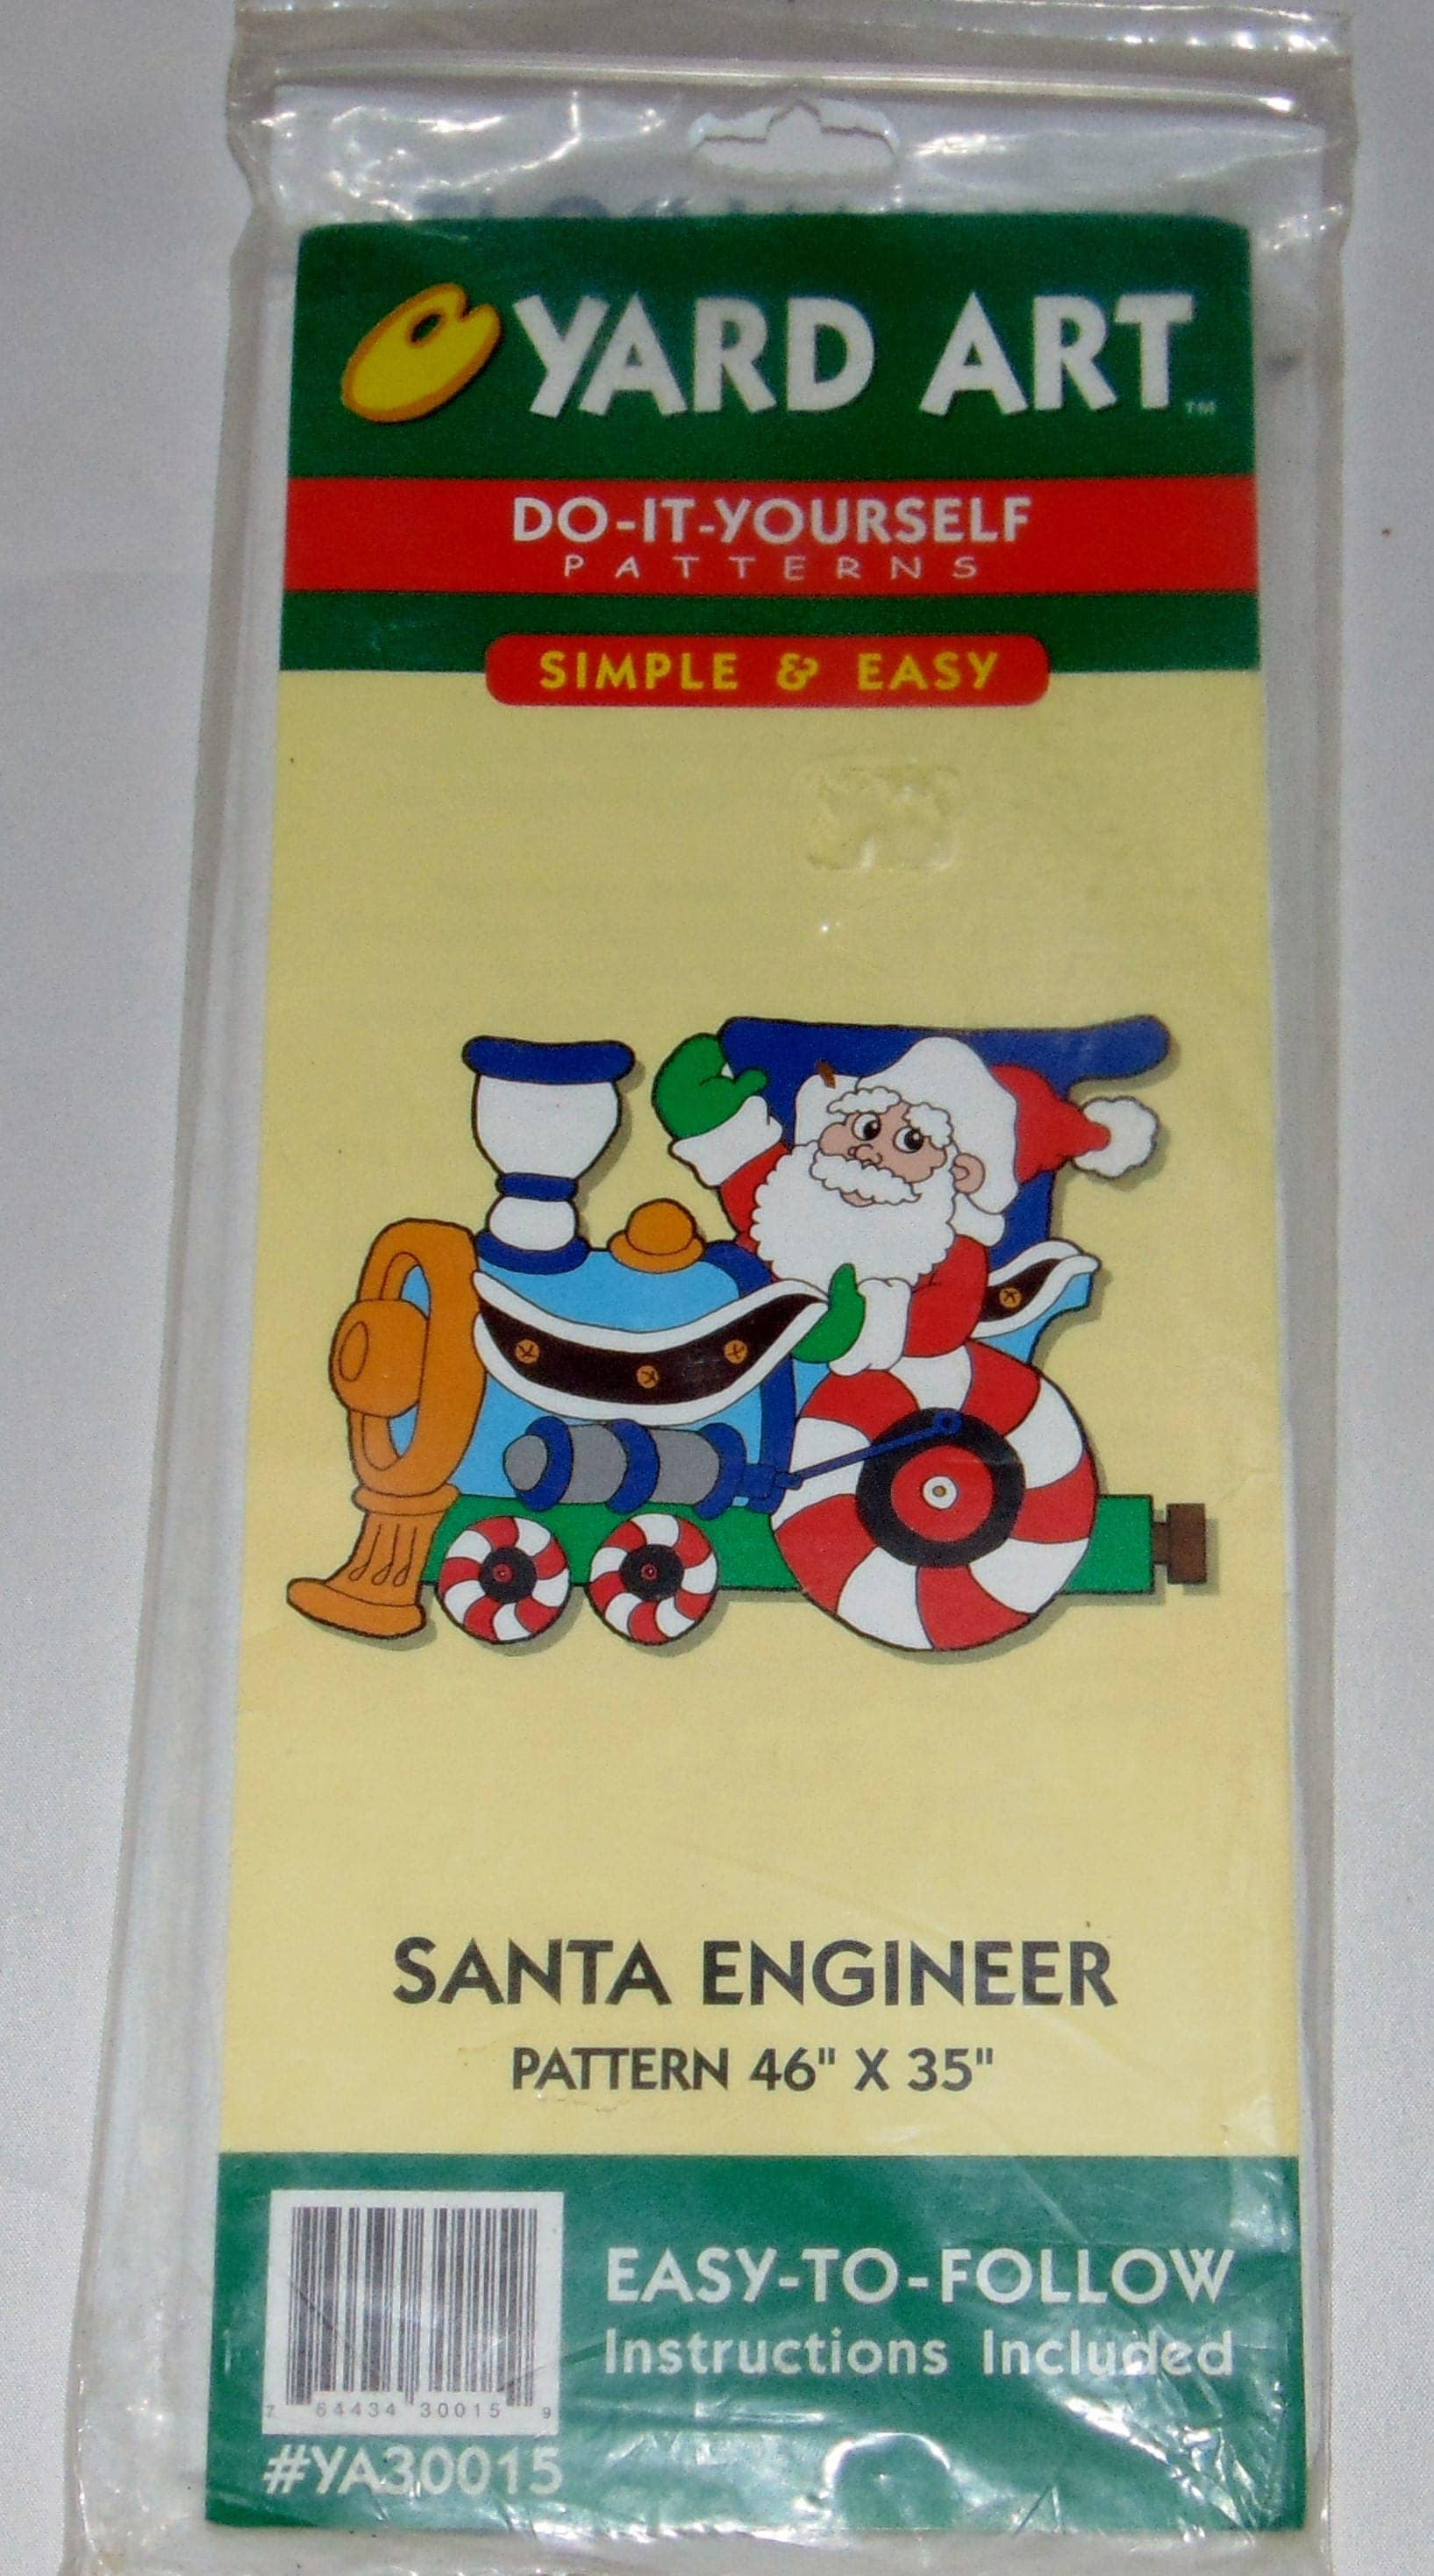 Yard art do it yourself patterns simple and easy santa engineer sold by craftsnsupplies solutioingenieria Choice Image